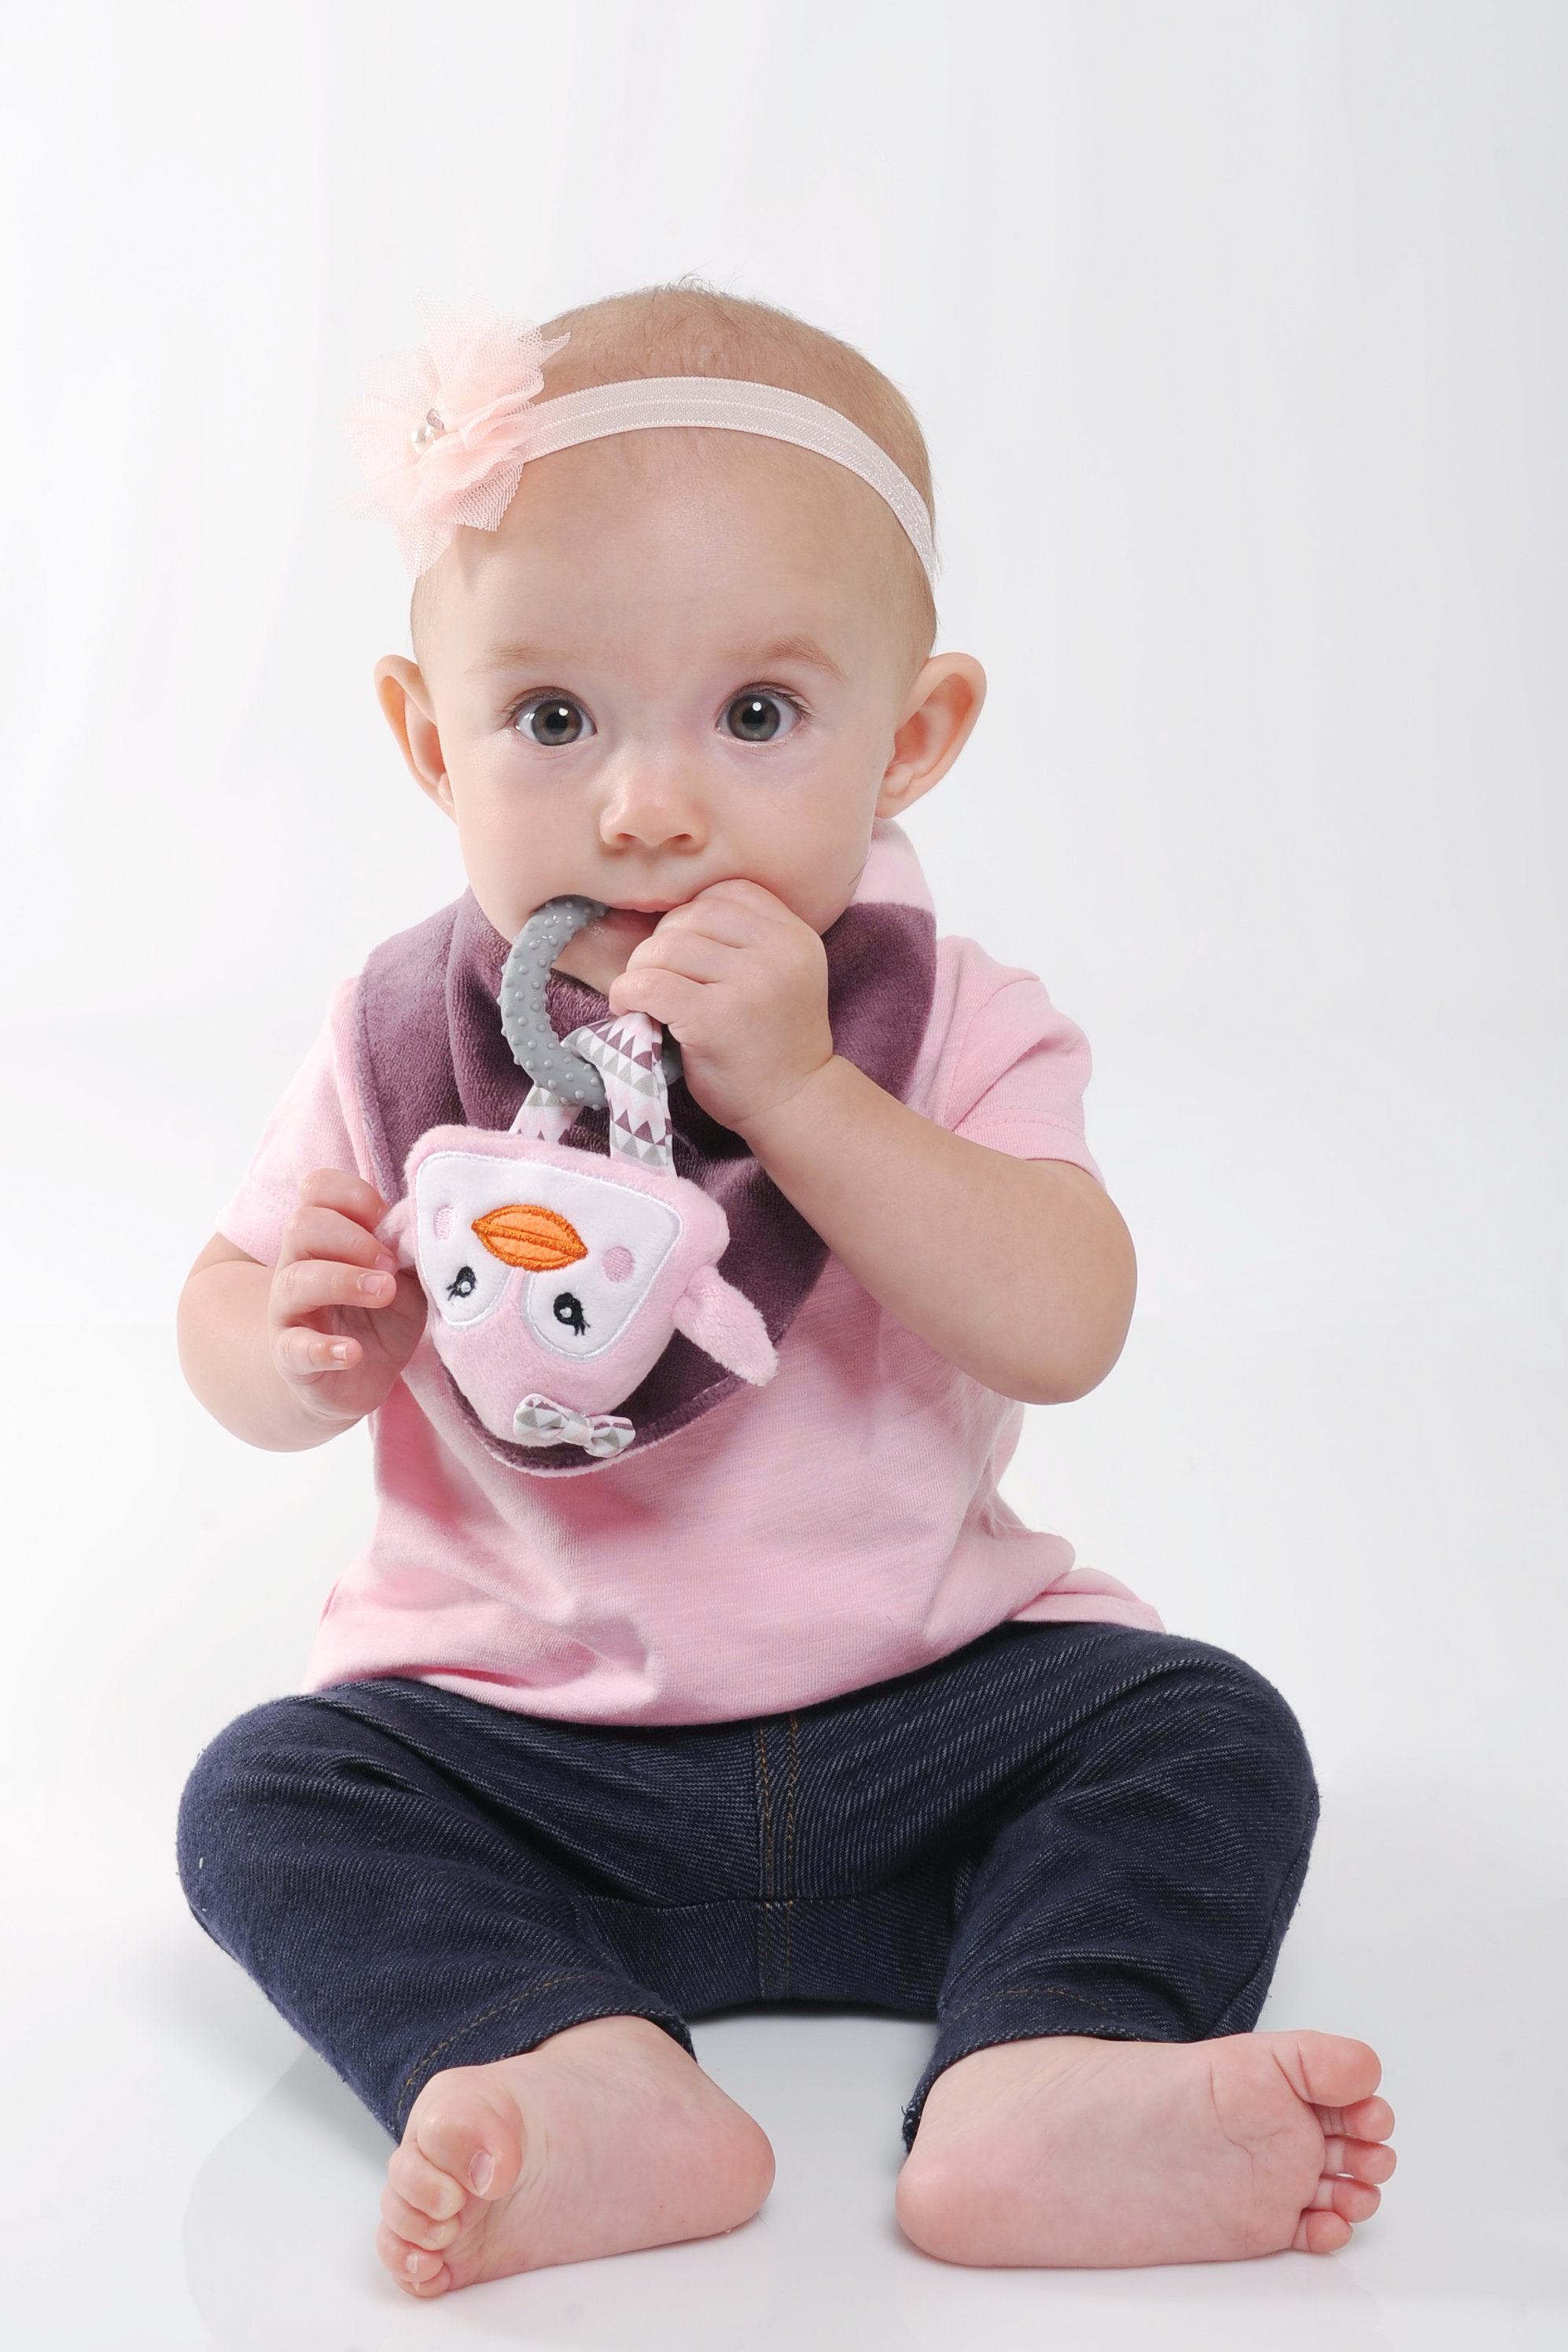 Buddy Bib Teething Toy & Bib